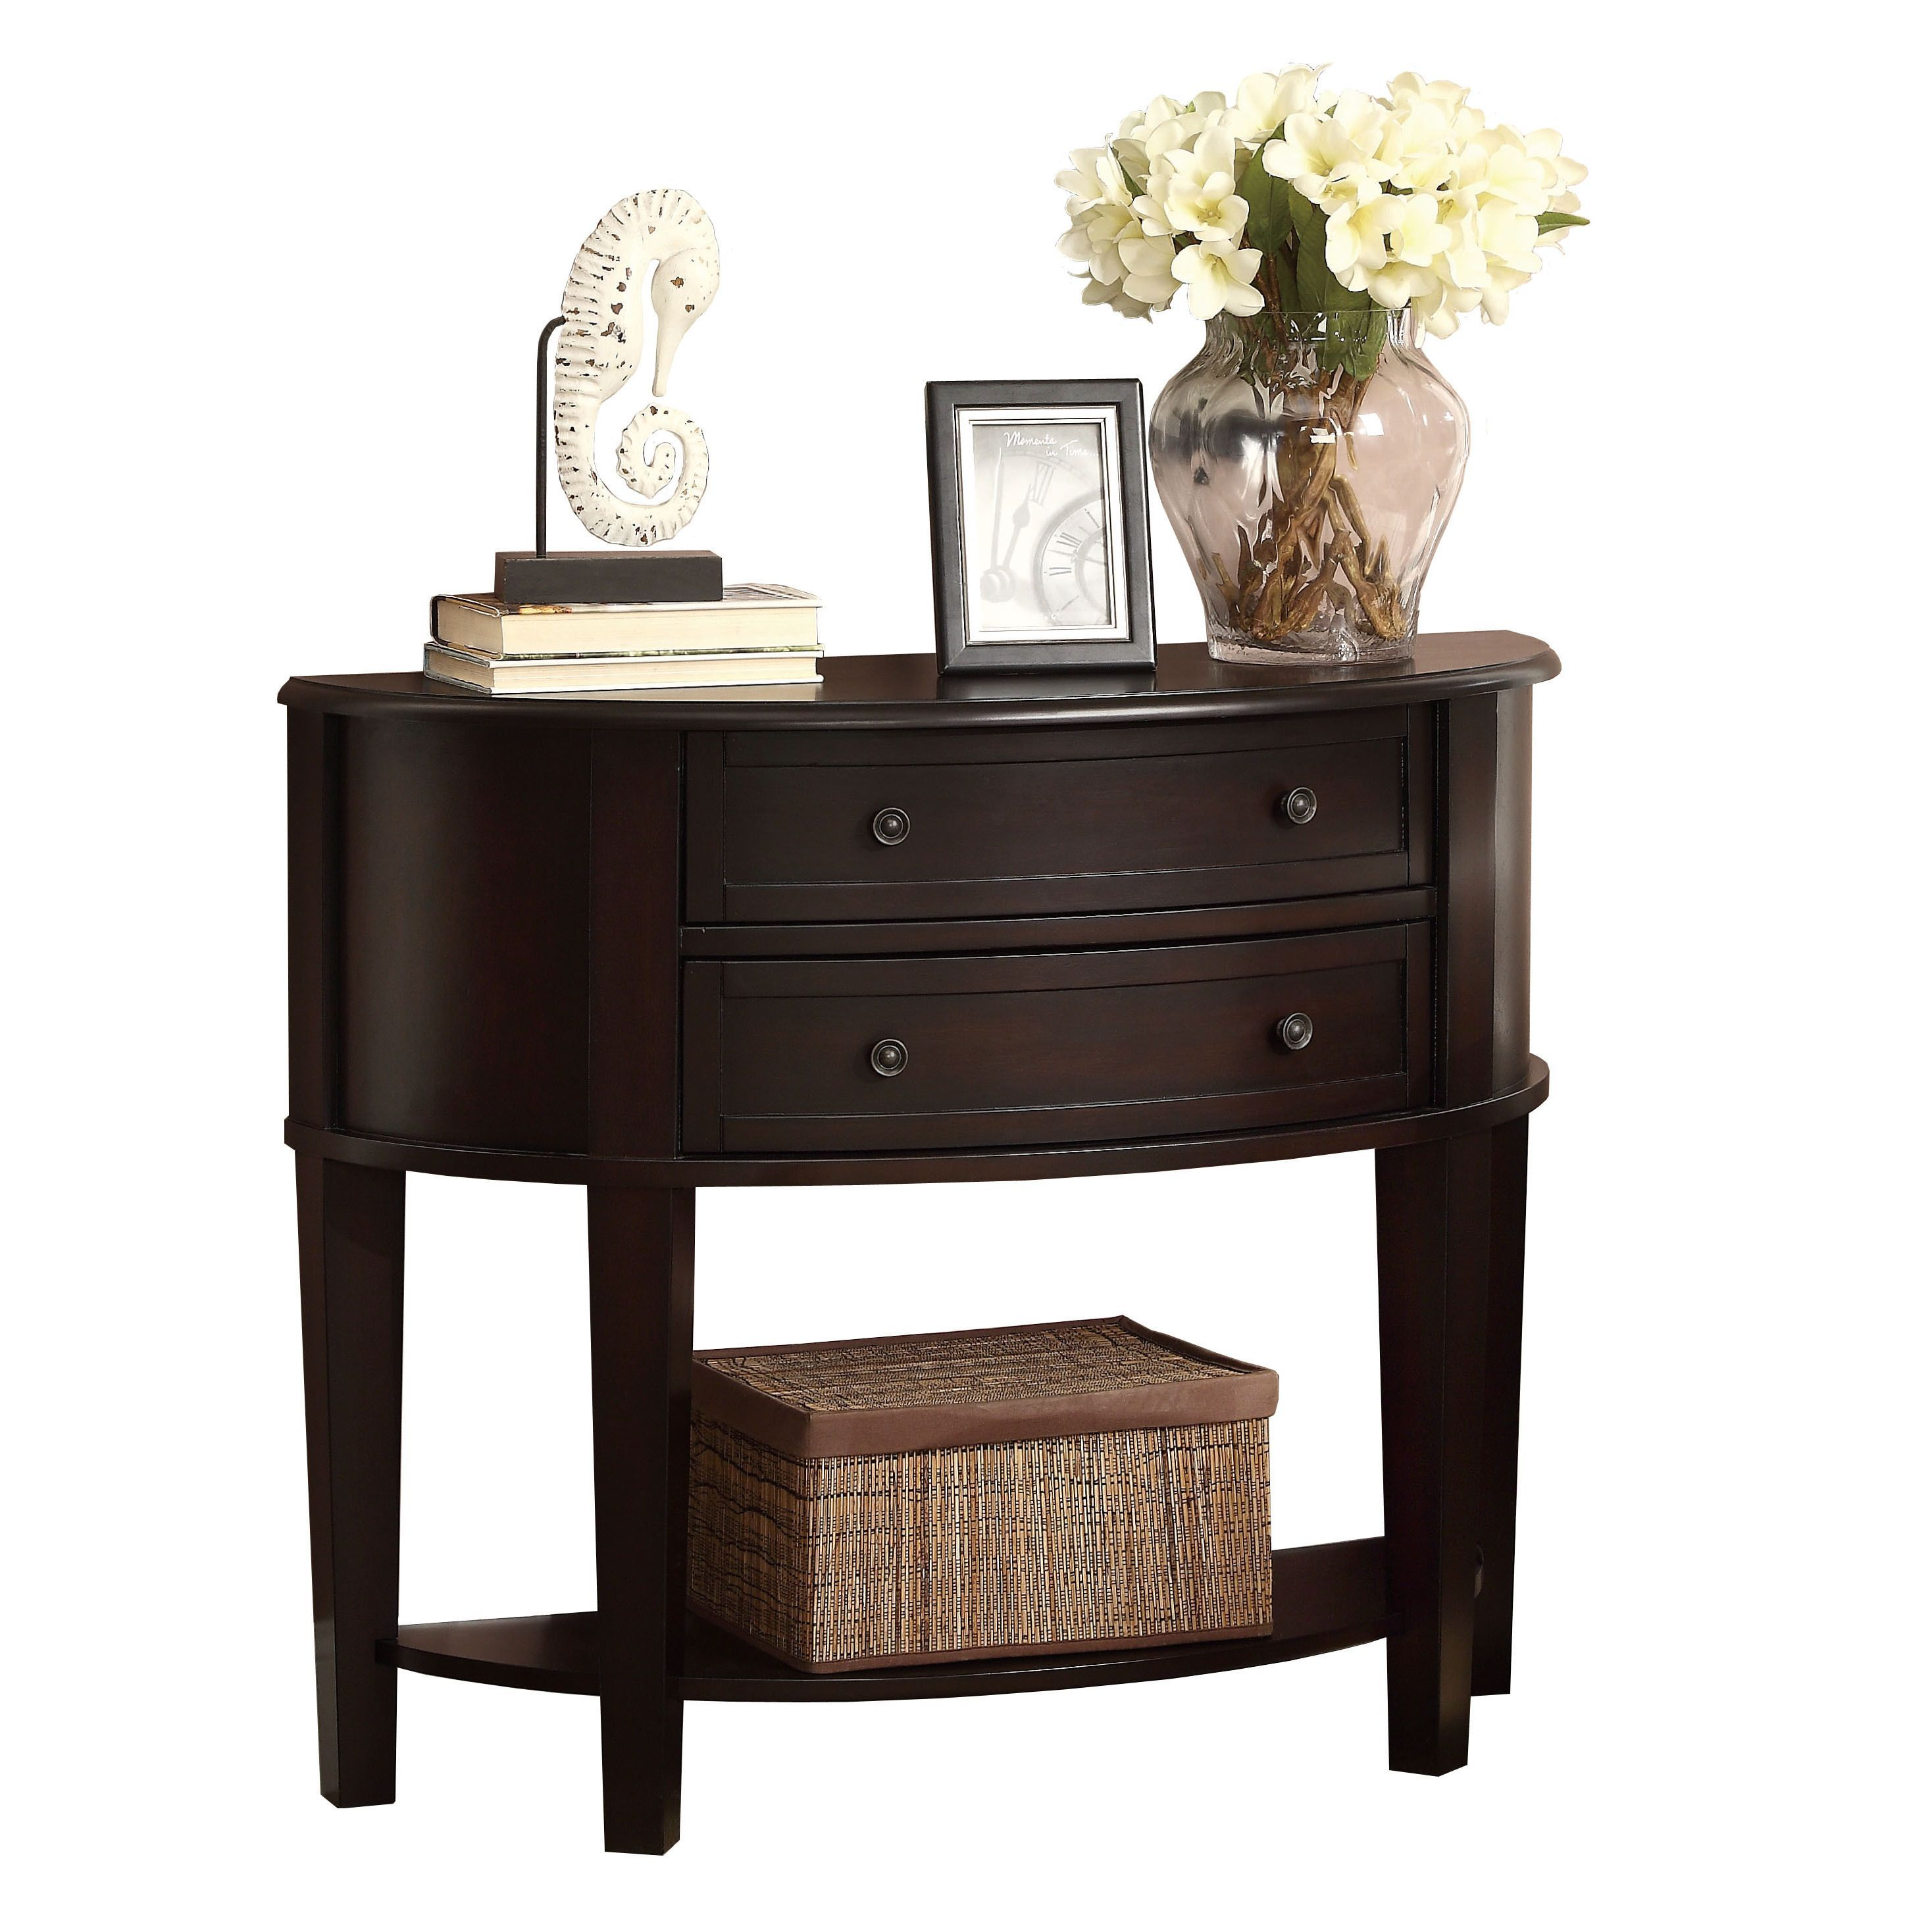 This Simple Demilune Console Table Is The Perfect Addition To Any